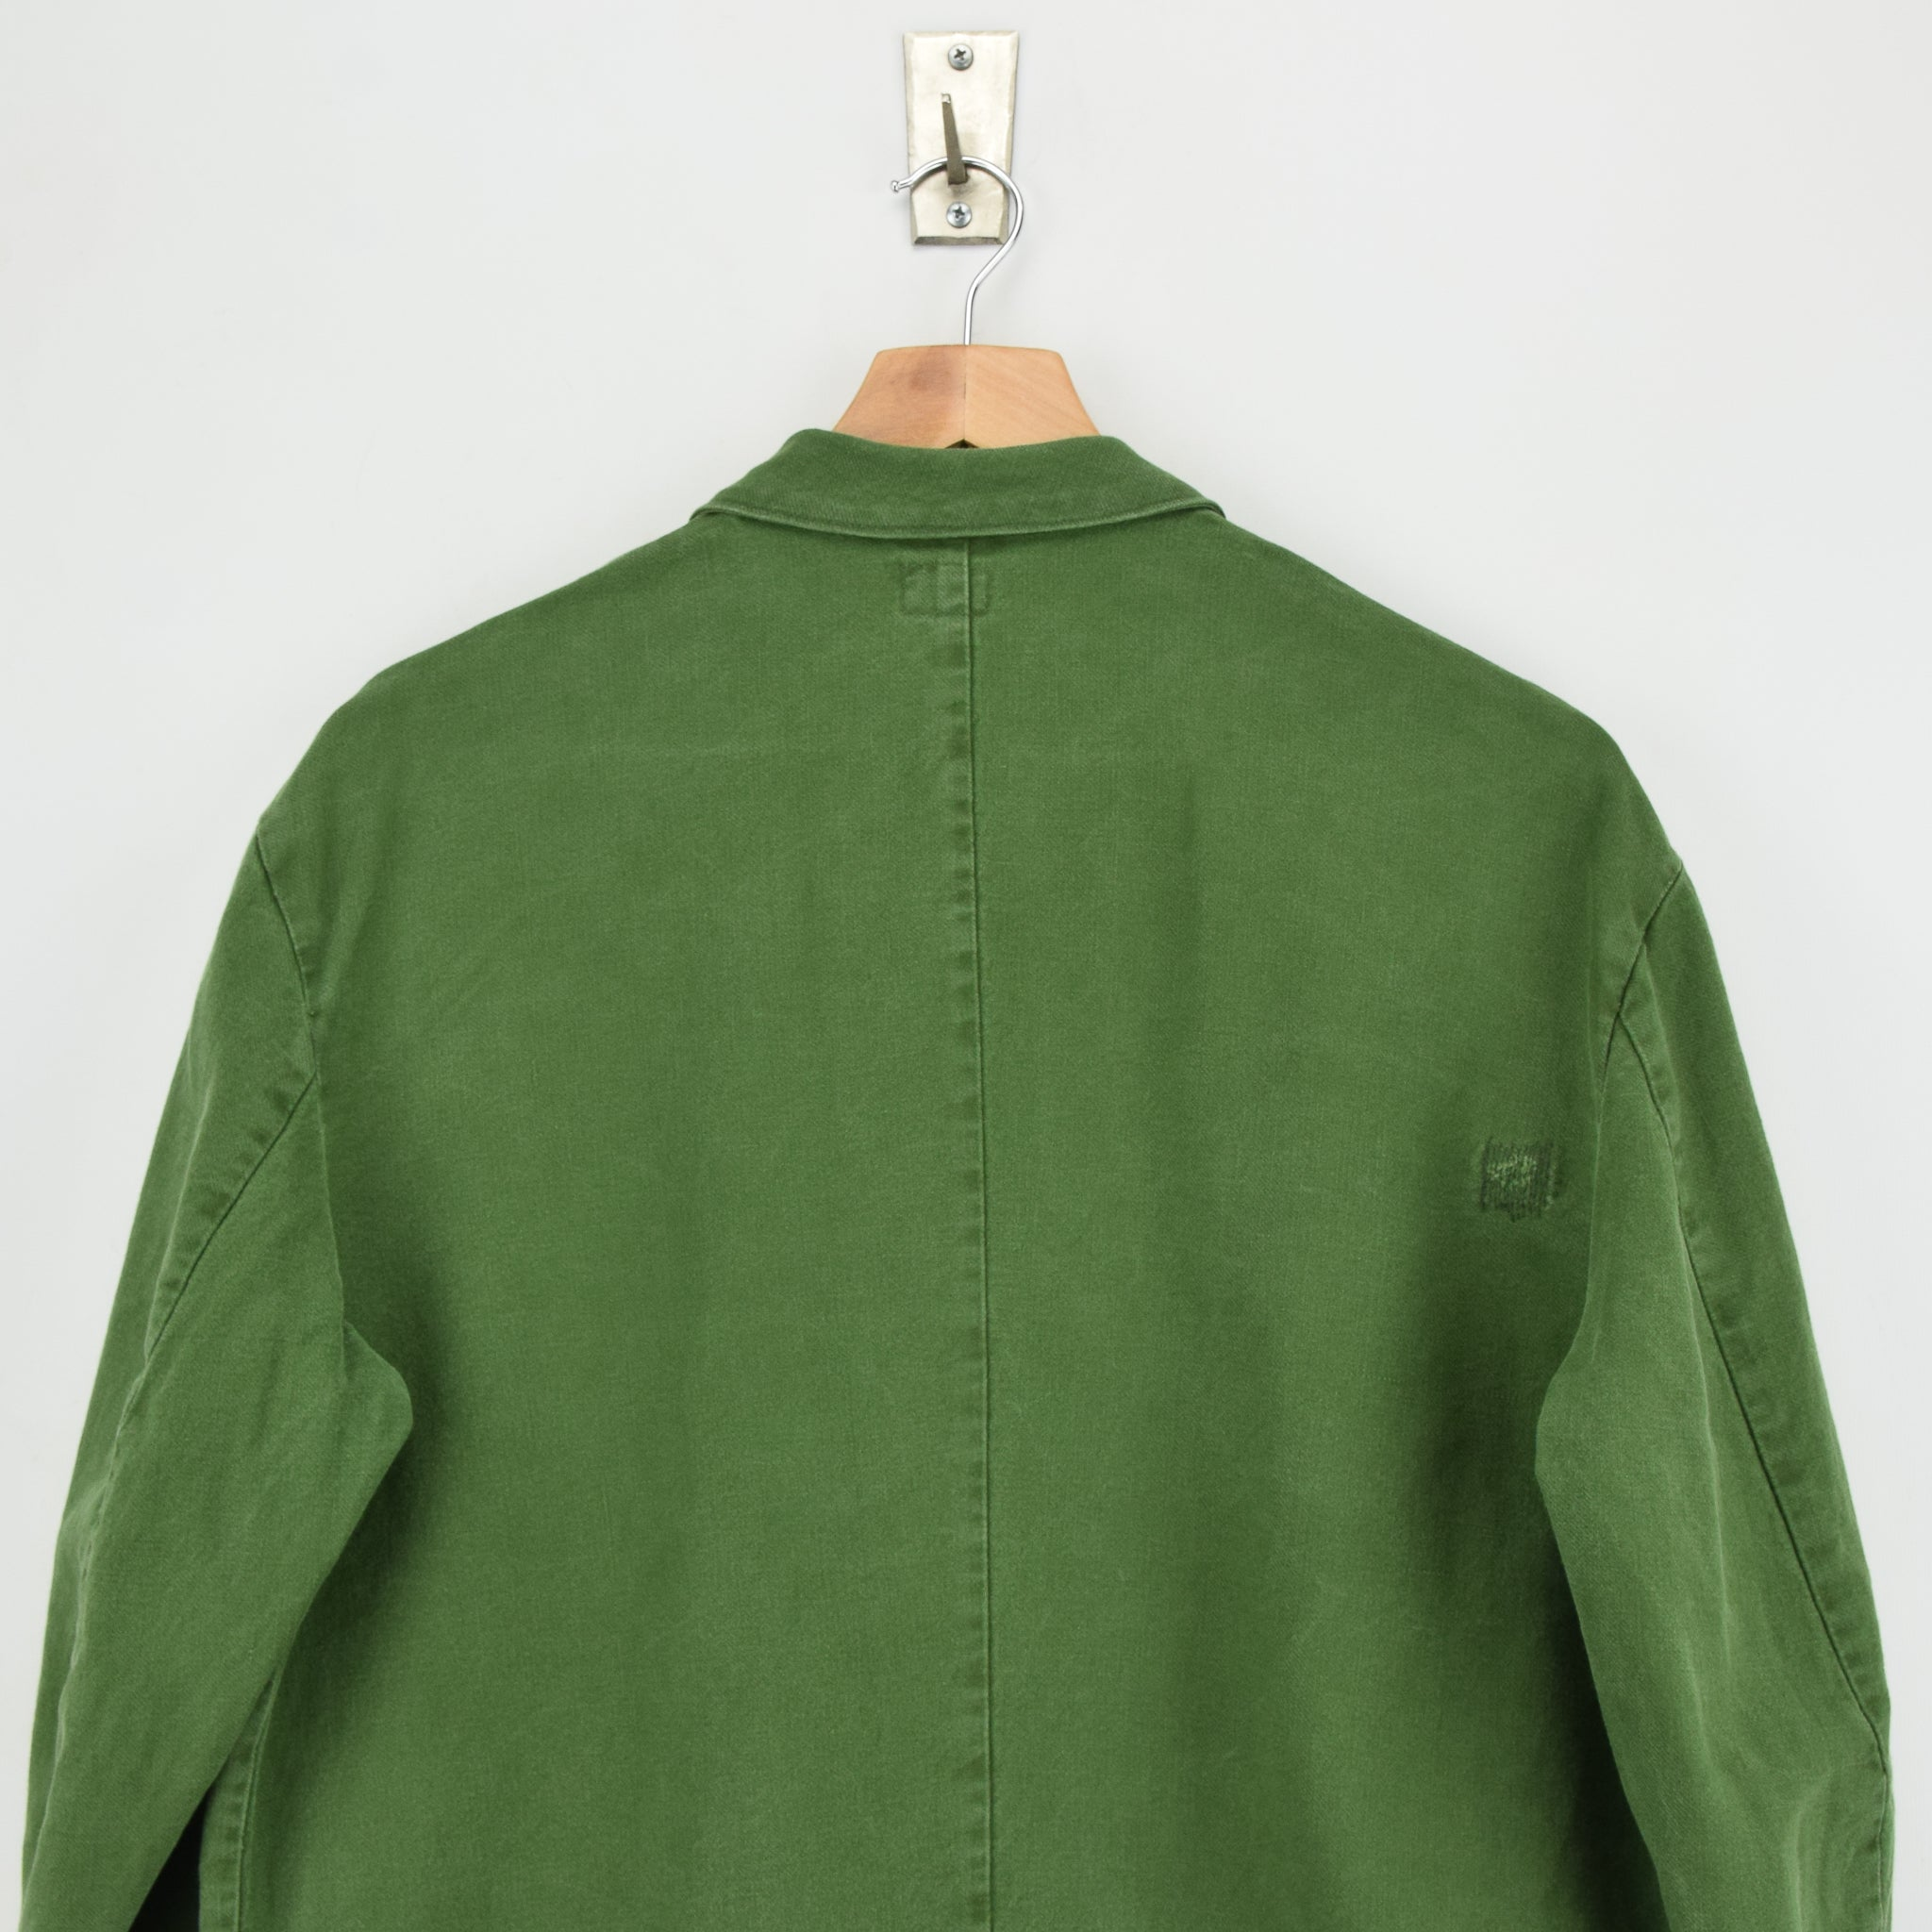 Vintage Swedish Worker Style Green Distressed Military Cotton Field Jacket M / L shoulders